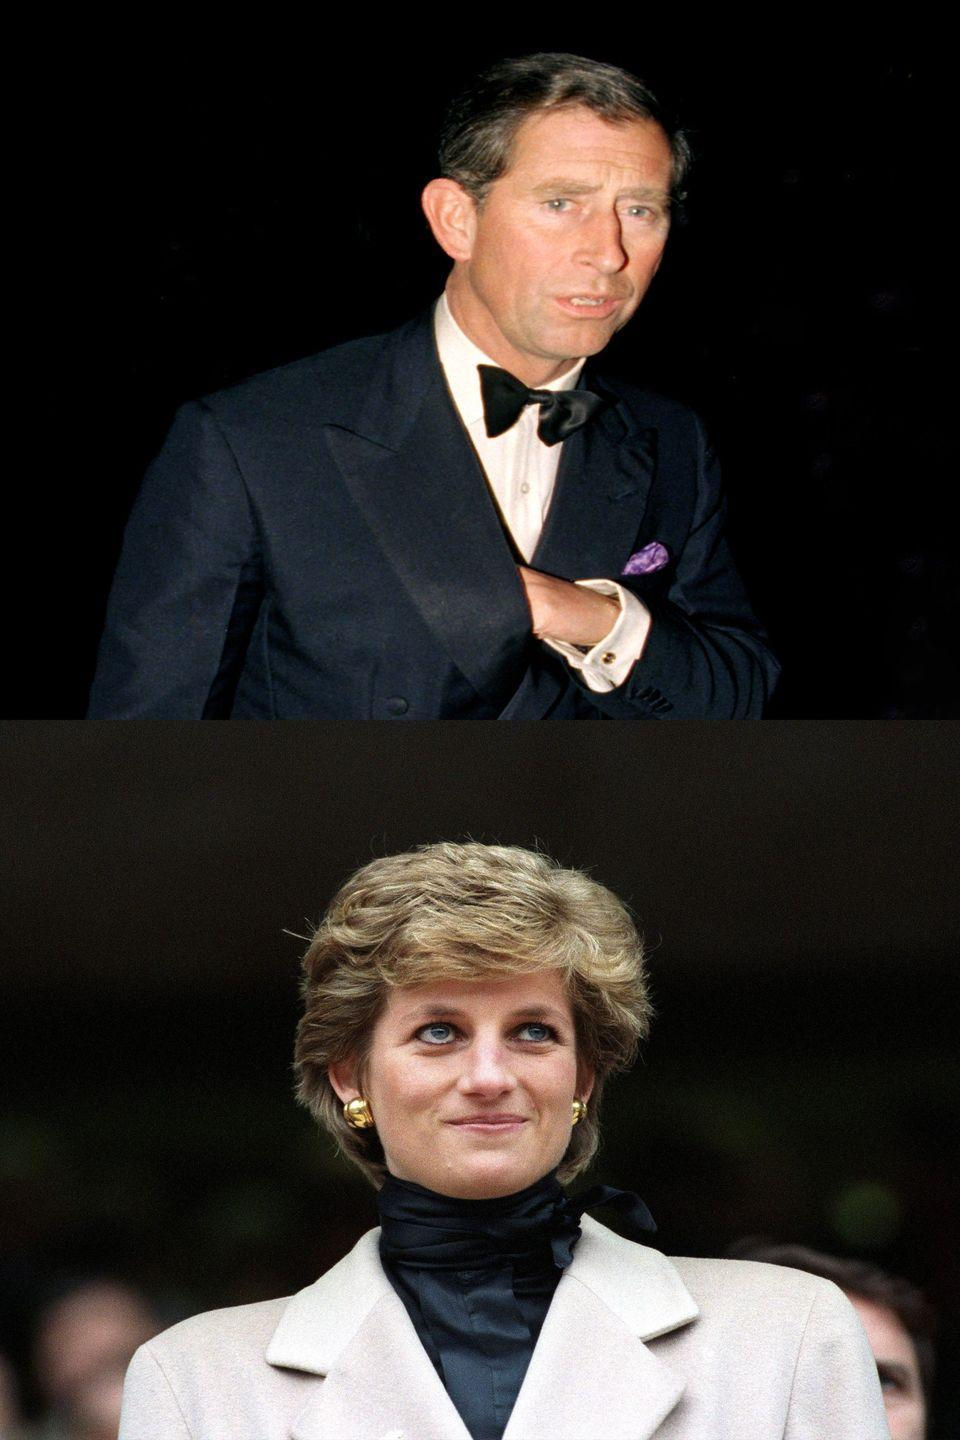 "<p>The People's Princess and her husband, Prince Charles, had separated way back in 1992, and the dissolution of the royal couple's marriage was a source of endless fascination. In 1994, Charles admitted to cheating on her with Camila Parker Bowles, and the following year, Princess Di finally sat down for her first solo interview. ""There were three of us in this marriage, so it was a bit crowded,"" <a href=""http://time.com/3583780/princess-diana-history/"" rel=""nofollow noopener"" target=""_blank"" data-ylk=""slk:she revealed"" class=""link rapid-noclick-resp"">she revealed</a>, while also admitting she'd been unfaithful. It got so much attention that a month later, the Queen <a href=""http://www.nytimes.com/1995/12/21/world/queen-urges-prince-charles-and-diana-to-divorce-soon.html"" rel=""nofollow noopener"" target=""_blank"" data-ylk=""slk:wrote the pair a letter"" class=""link rapid-noclick-resp"">wrote the pair a letter</a> telling them to hurry up and divorce already.</p>"